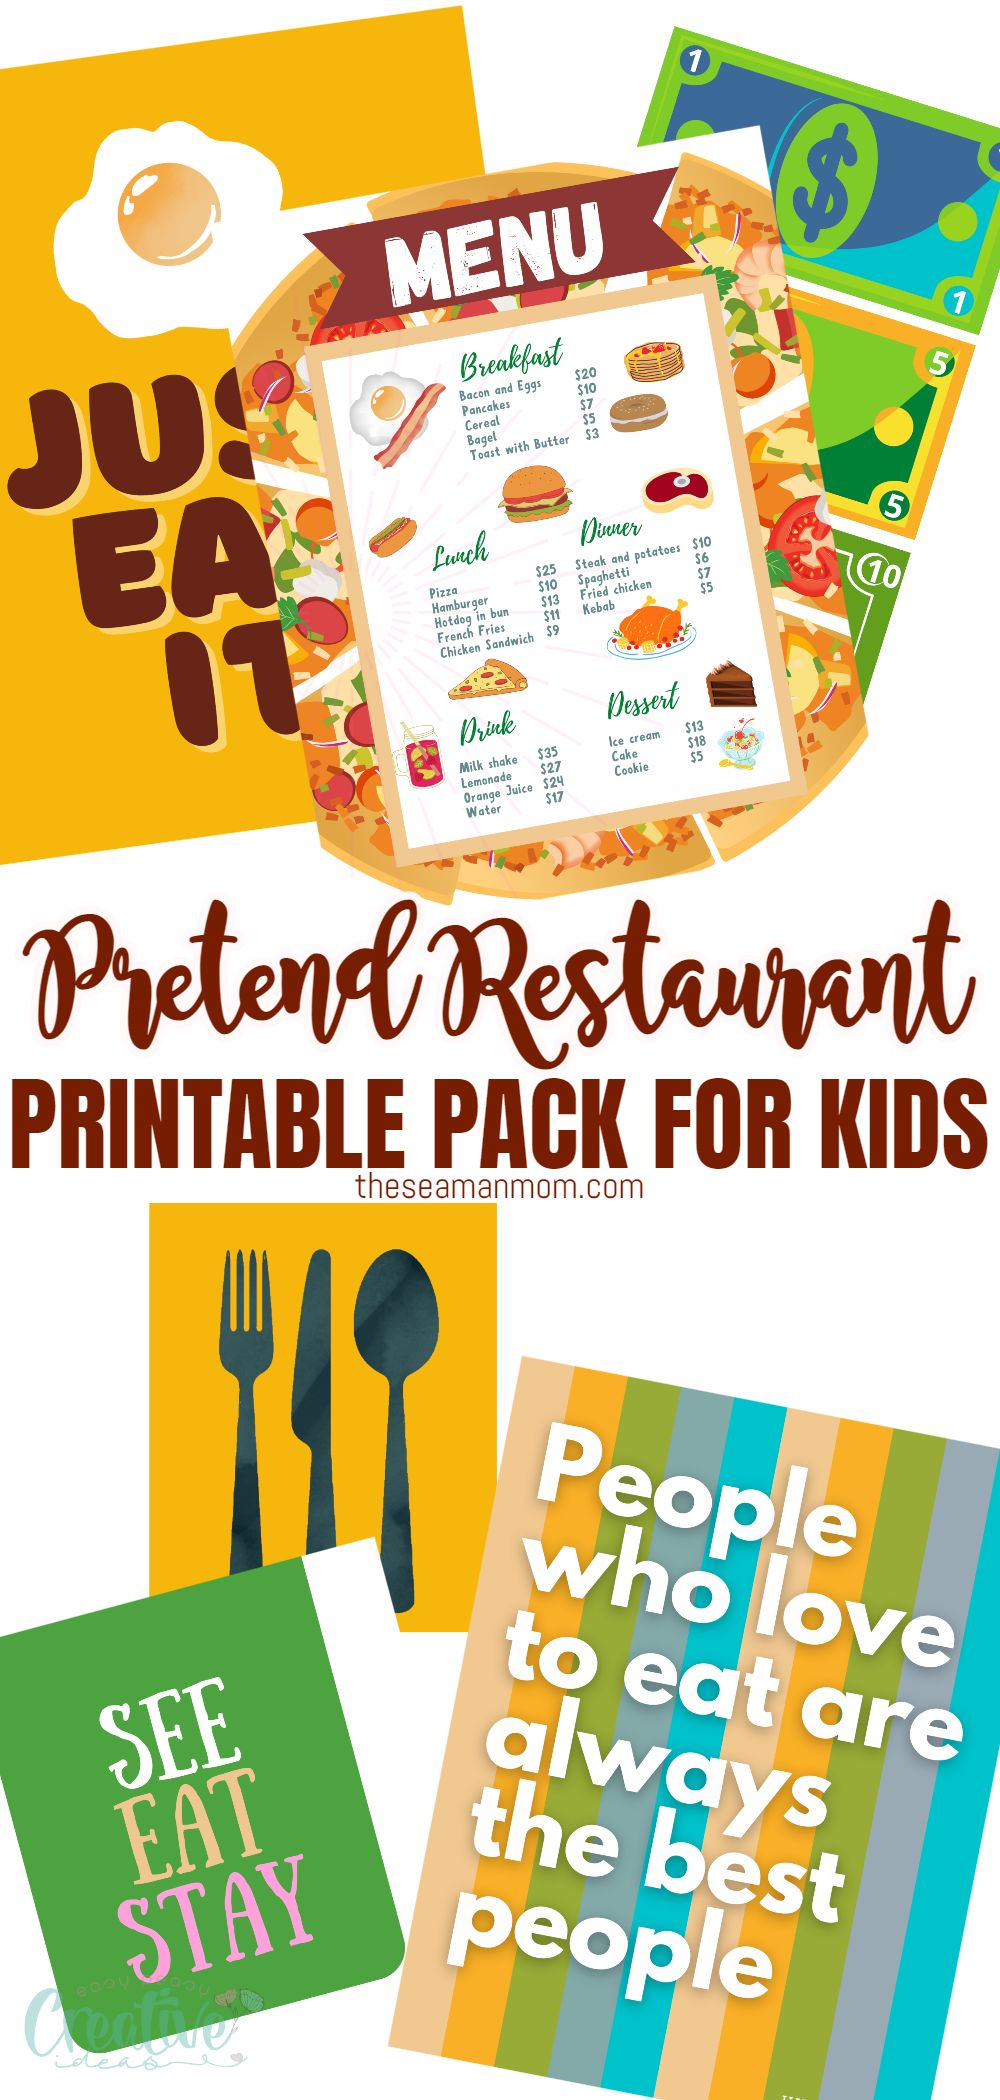 Dramatic play is a great way for your kids to act out real-world situations at home. But creating new play areas every time your child wants to play something new can be expensive and time consuming. With the help of this printable set for a pretend play restaurant, you can easily set up a pretend restaurant in your home for your child in a matter of minutes. via @petroneagu